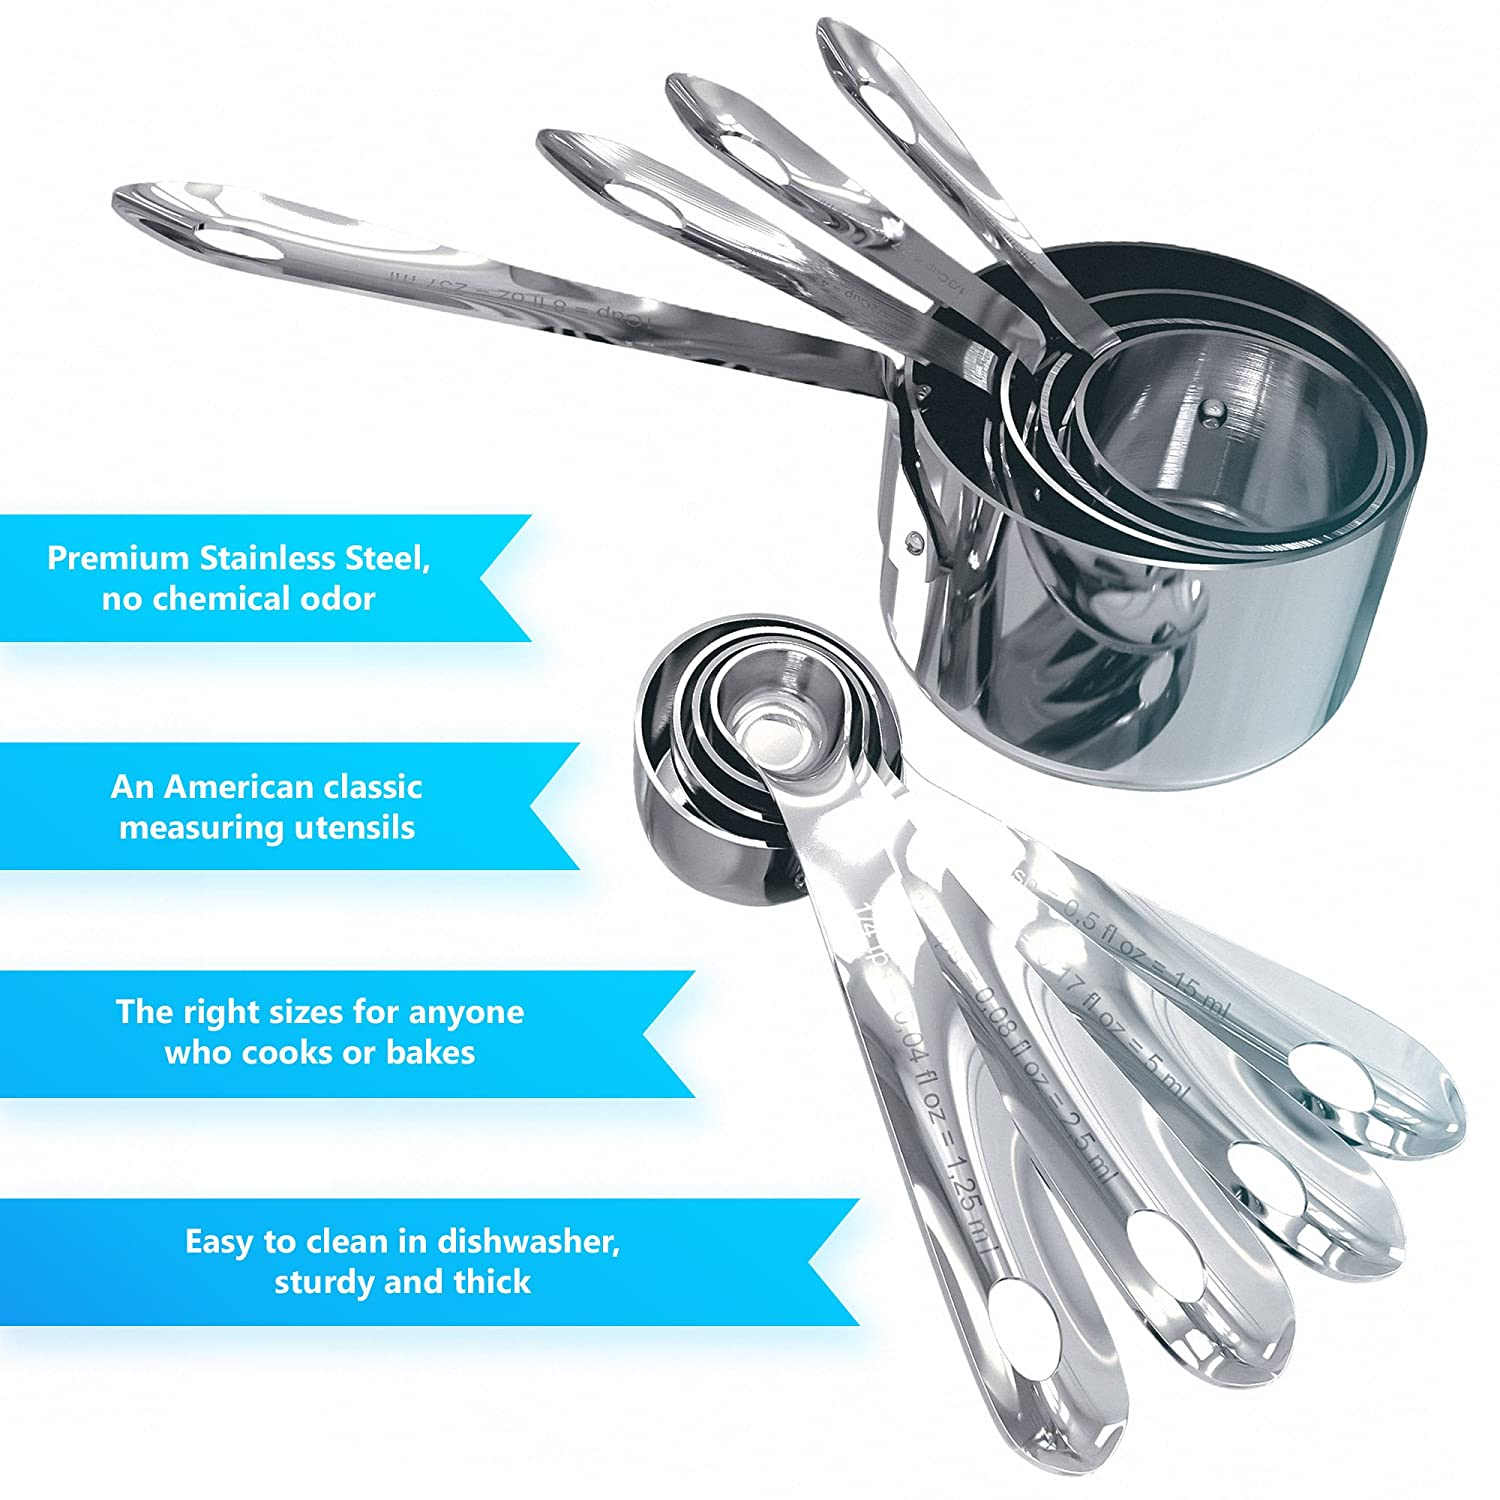 Amazon.com: Nesting Stainless Steel Measuring Cups and Spoons, Set ...